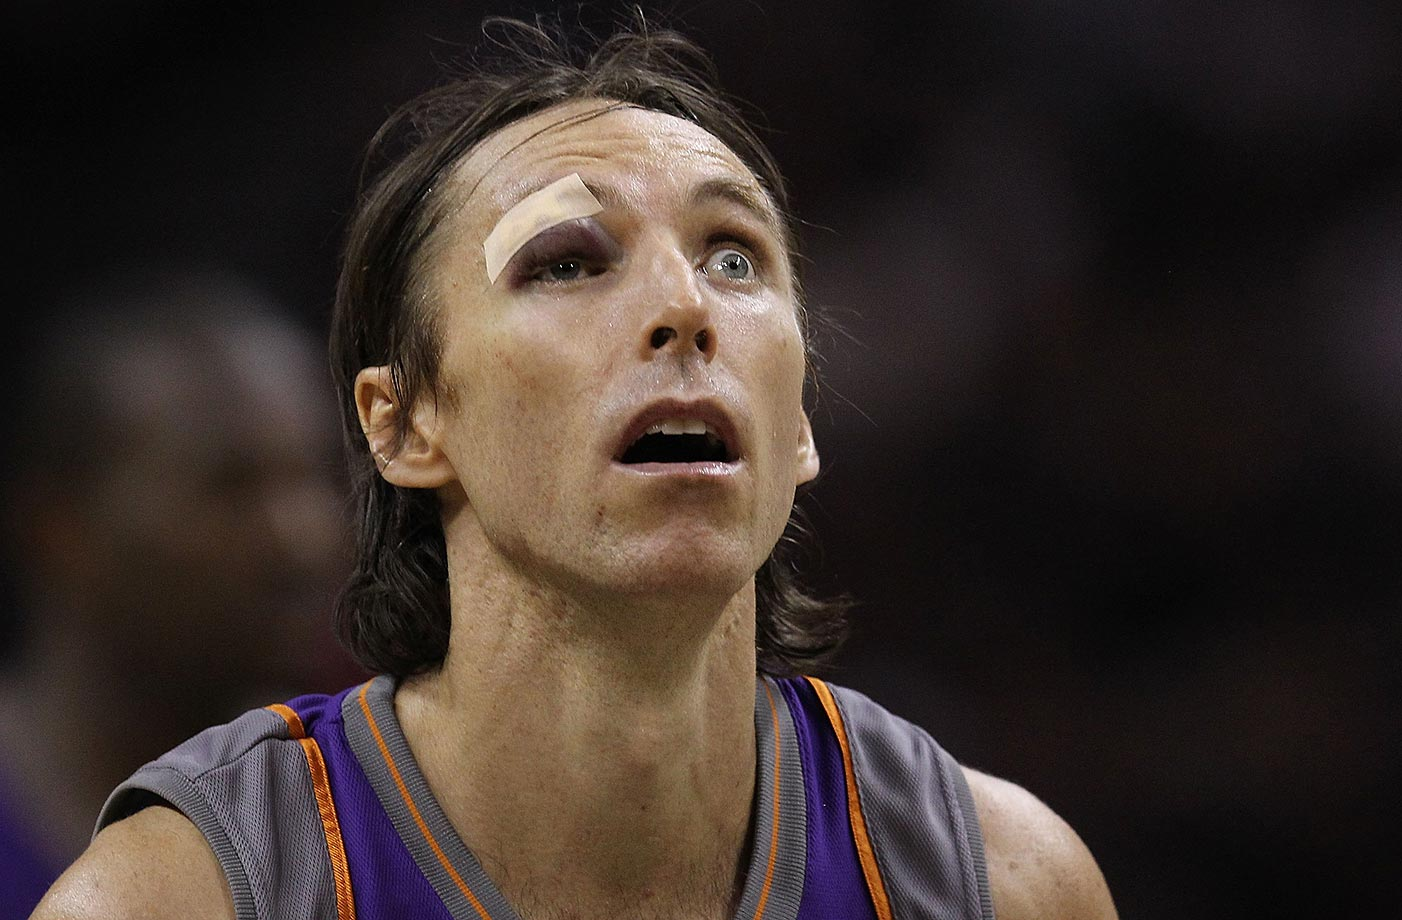 Steve Nash of the Phoenix Suns after receiving six stitches to his eye against the San Antonio Spurs in Game 4 of the 2010 Western Conference semifinals.